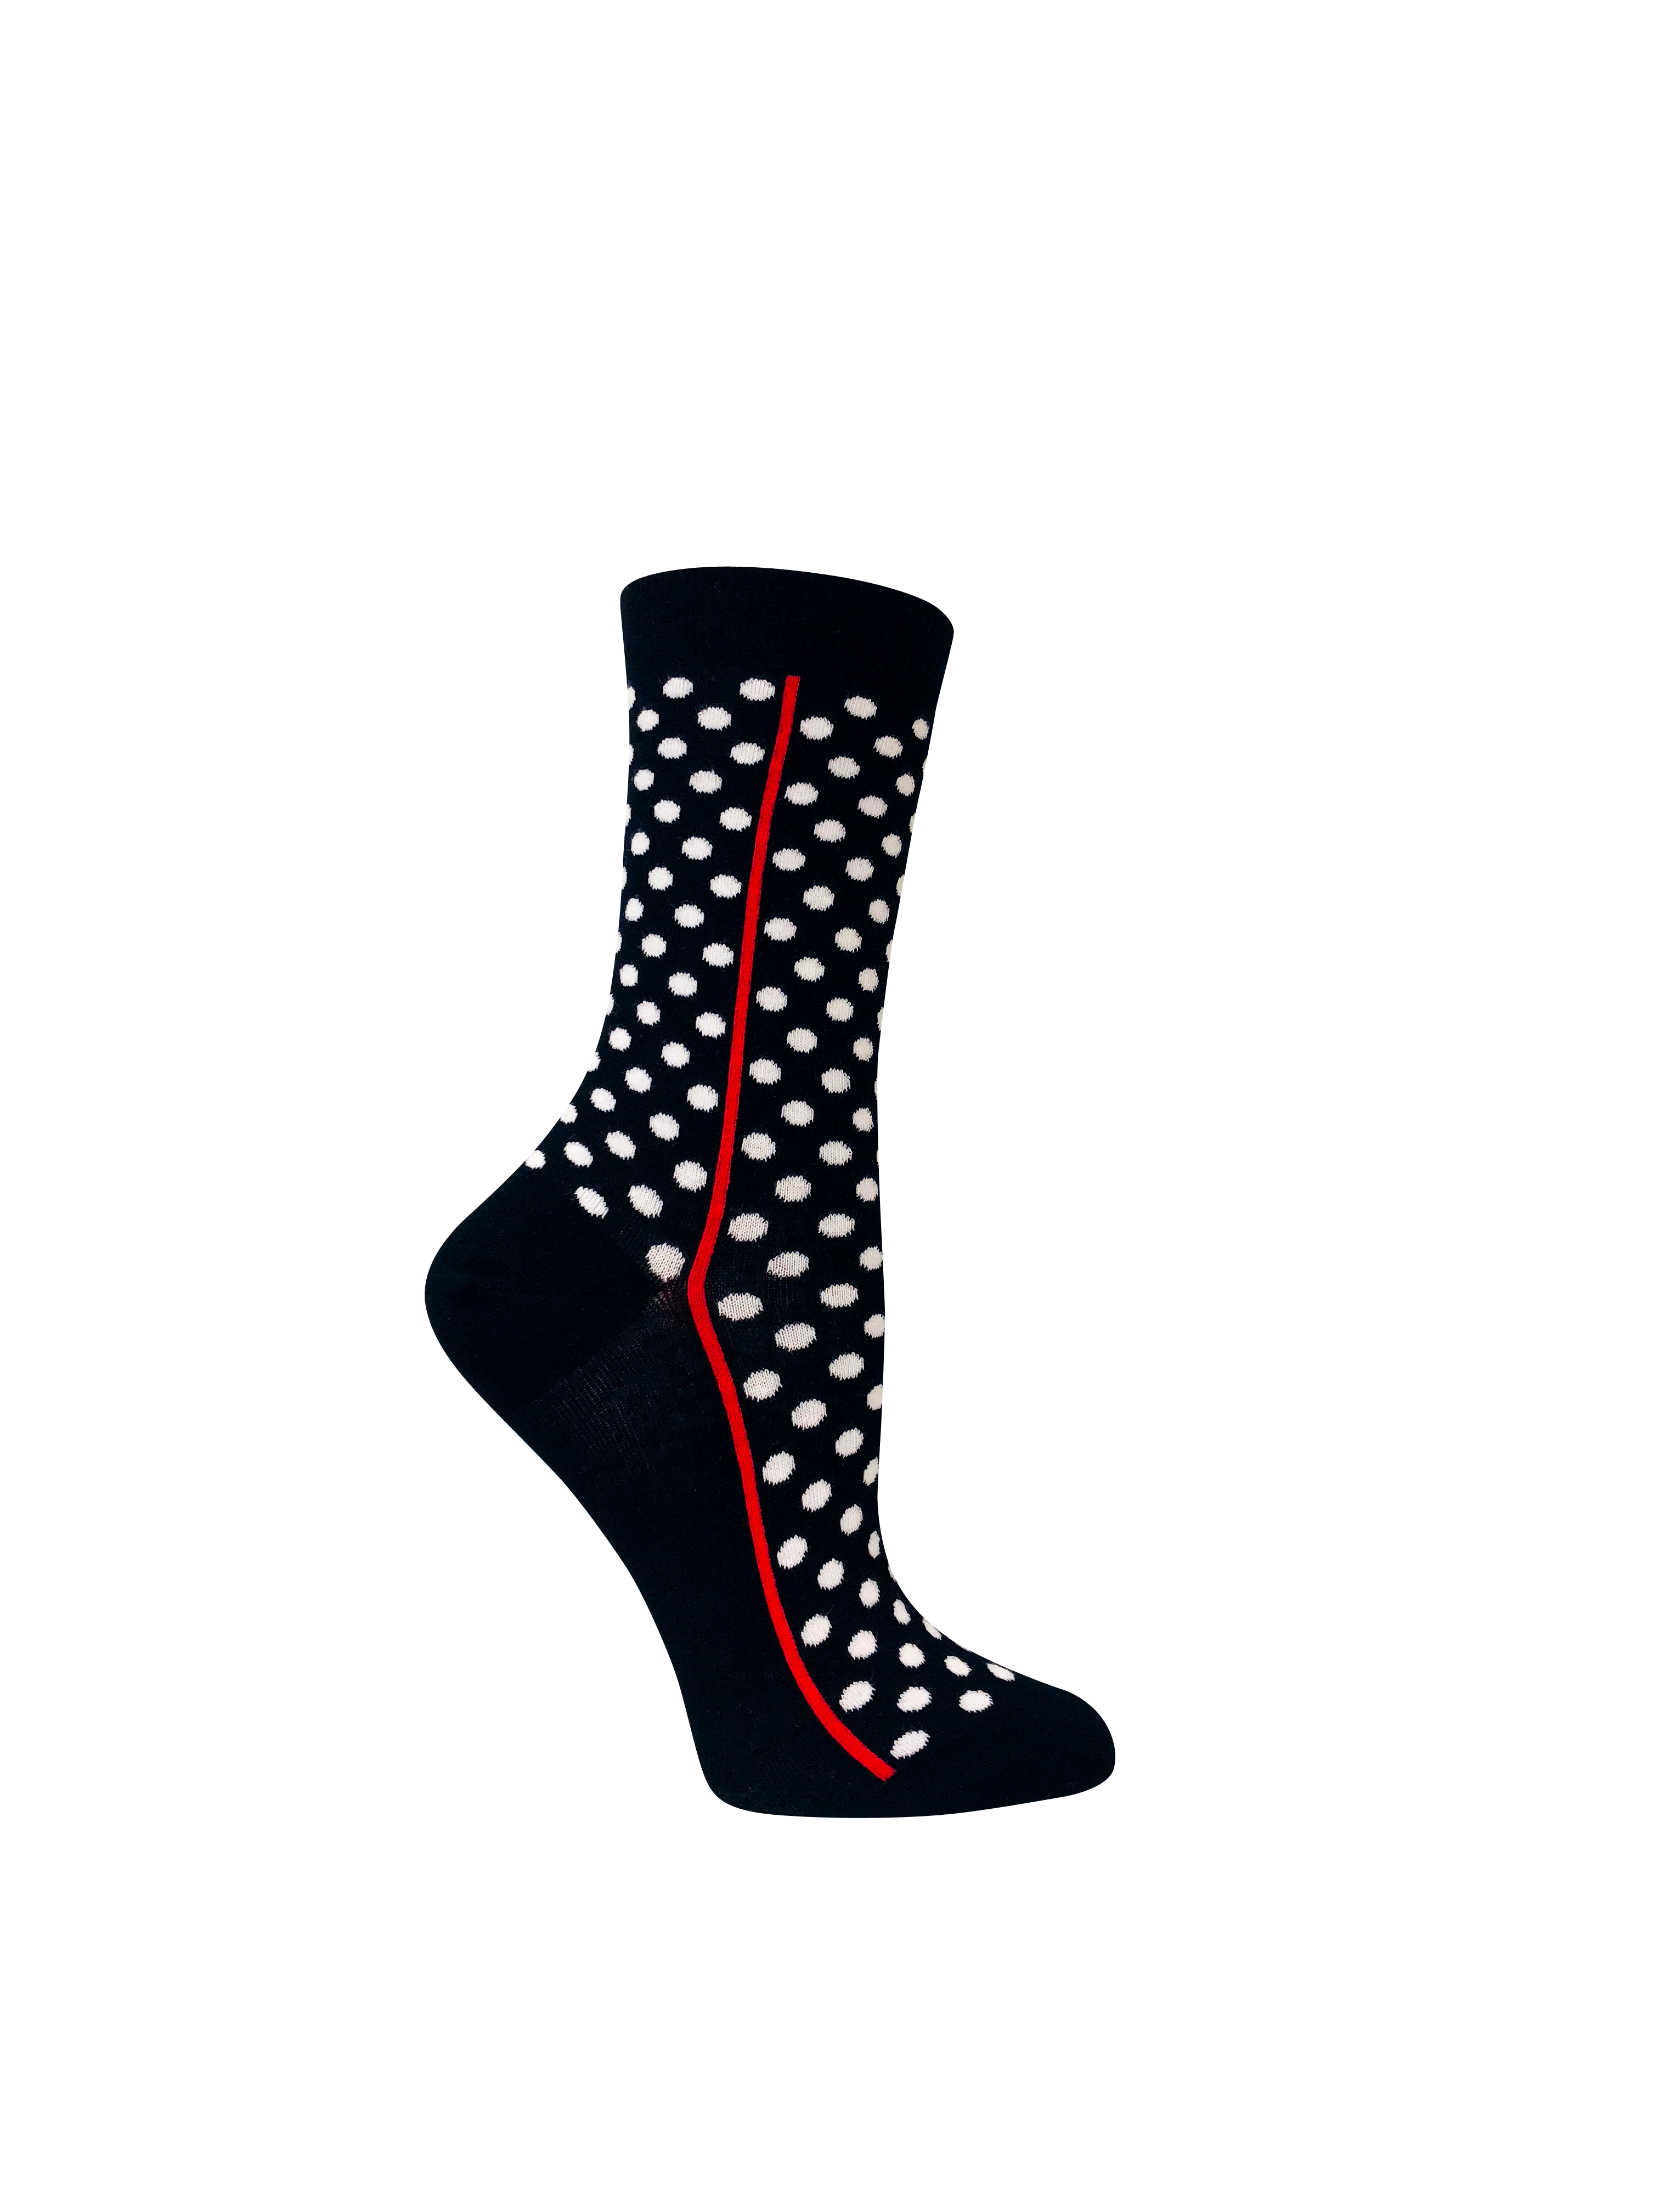 2cc2126096b8 Women's organic cotton crew socks | Red line blue with white polka dots